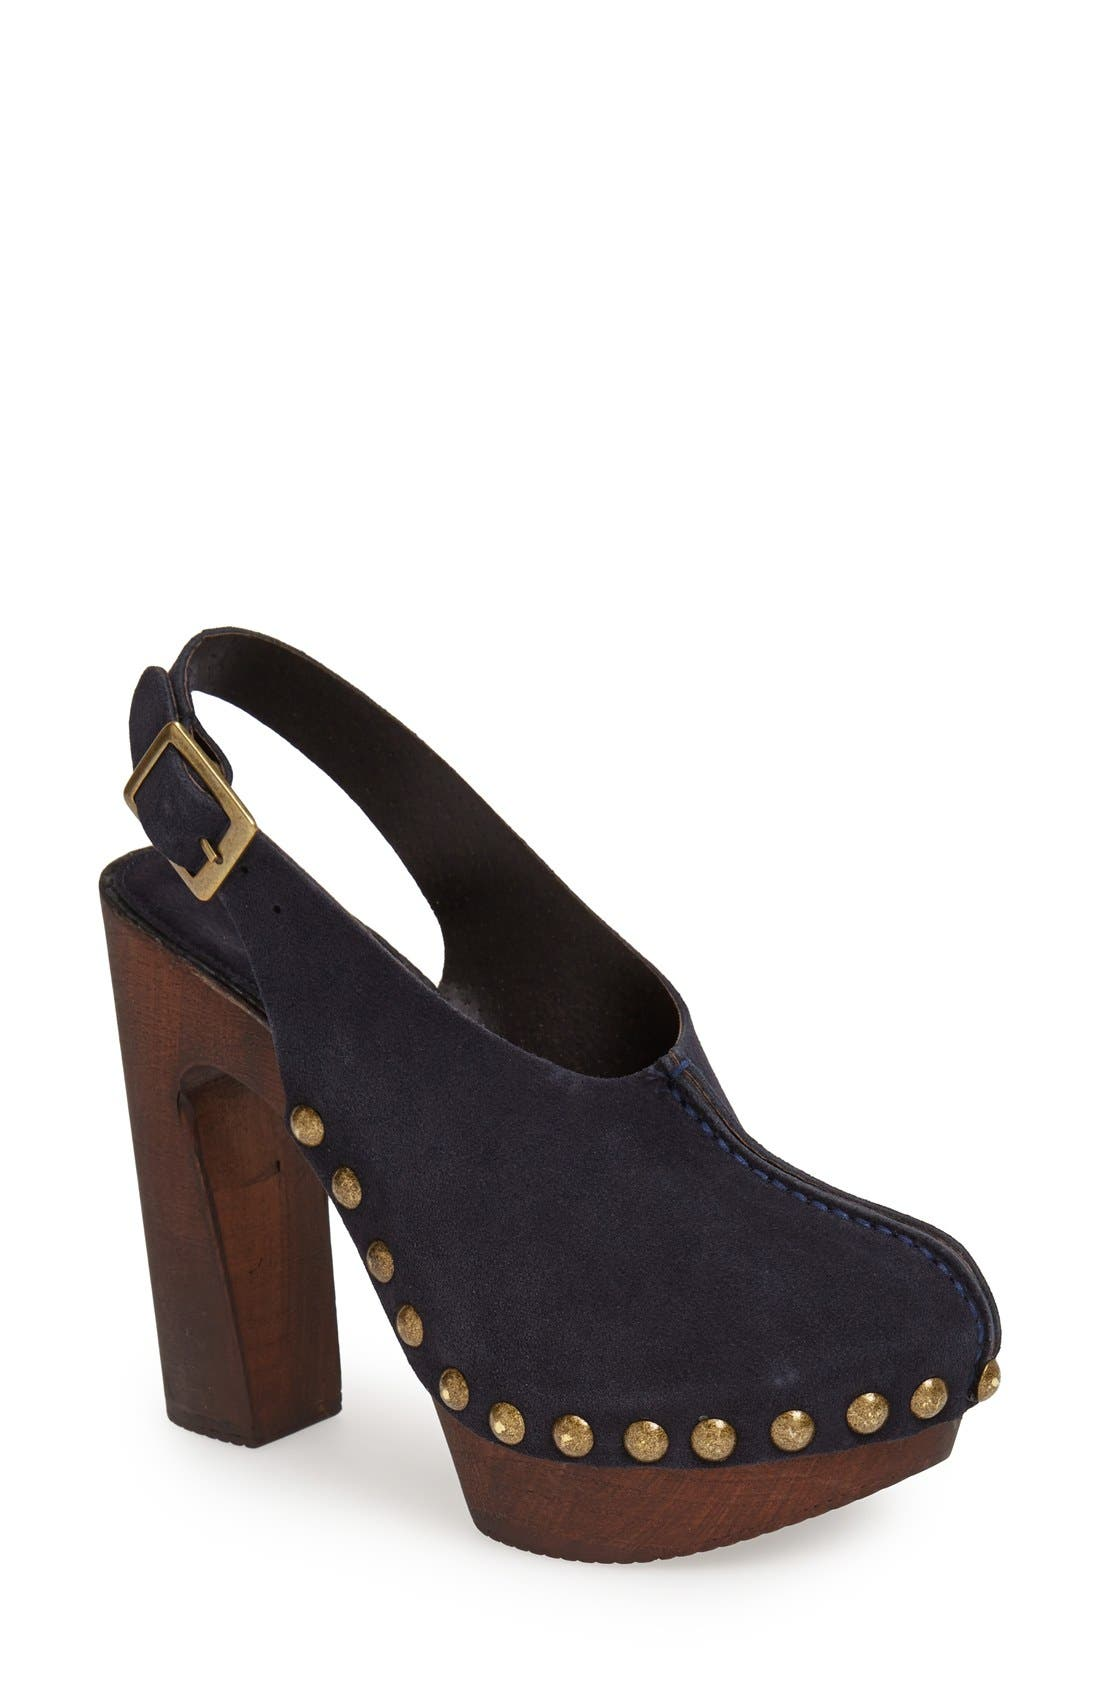 Alternate Image 1 Selected - Charles David 'Picchio' Slingback Clog (Women)